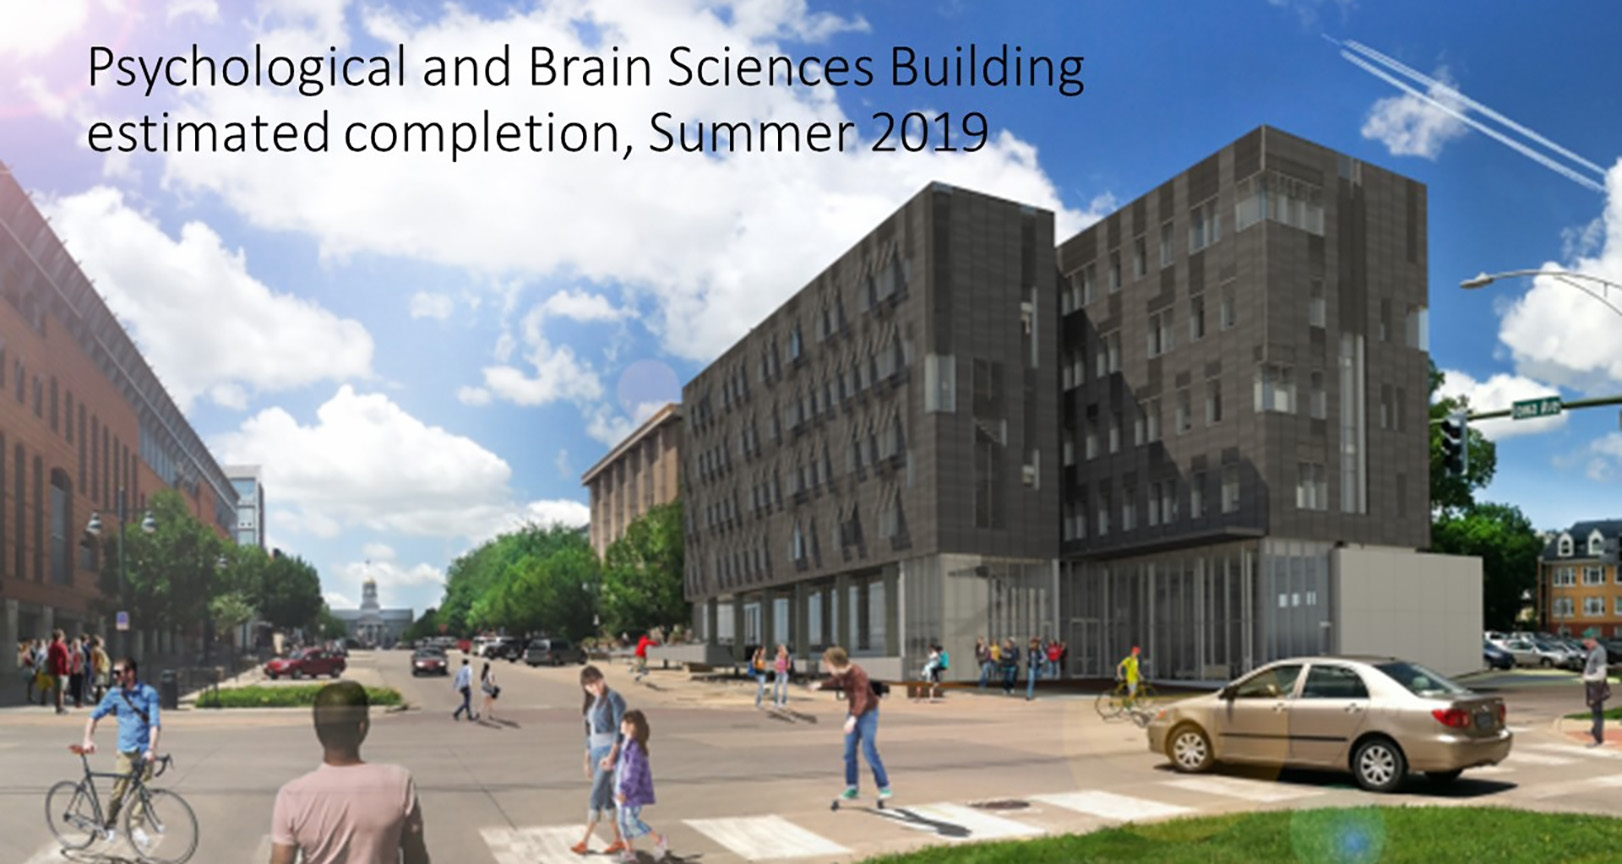 Psychological and Brain Sciences Building